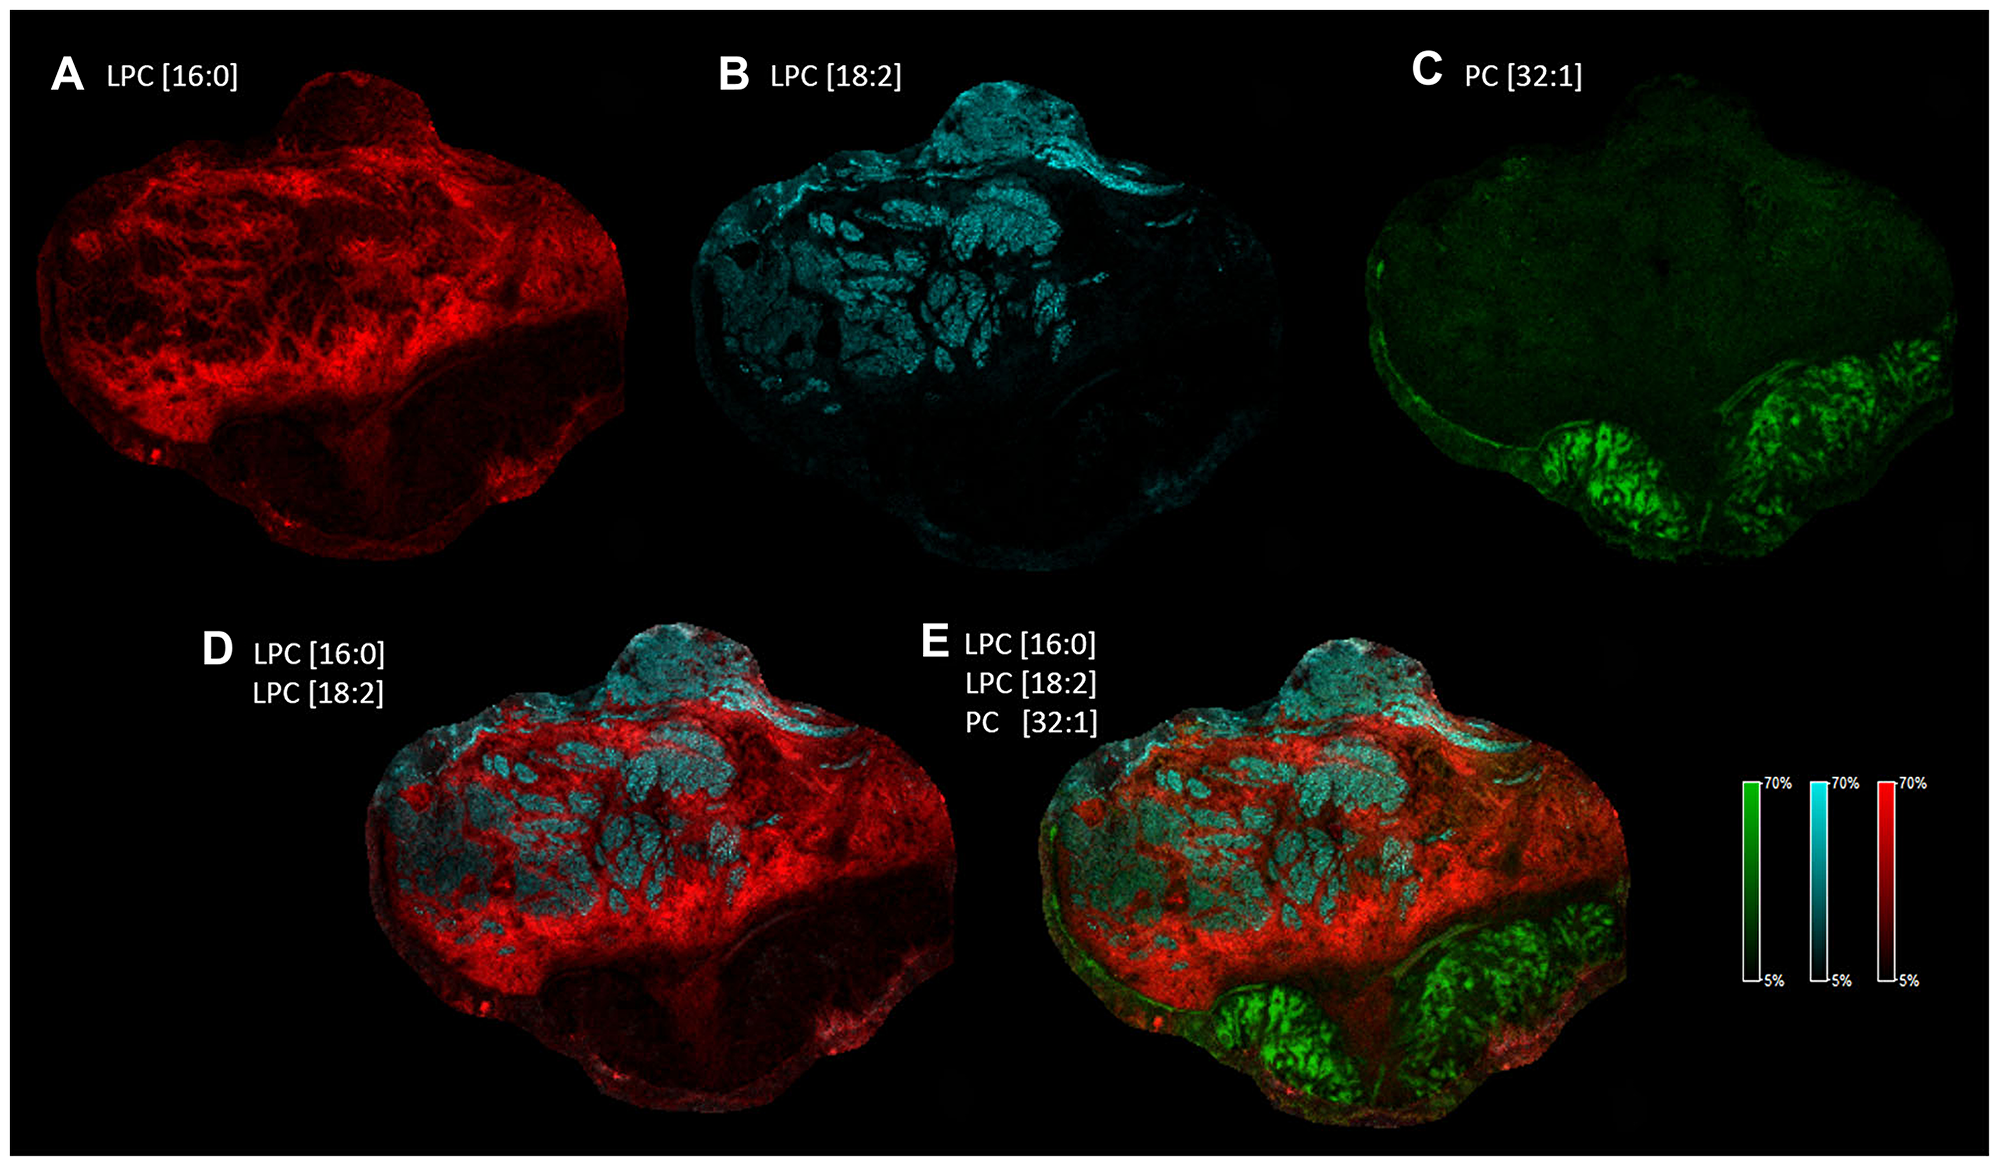 Heterogeneous distribution of specific LPC and PC species in the tissue sample.